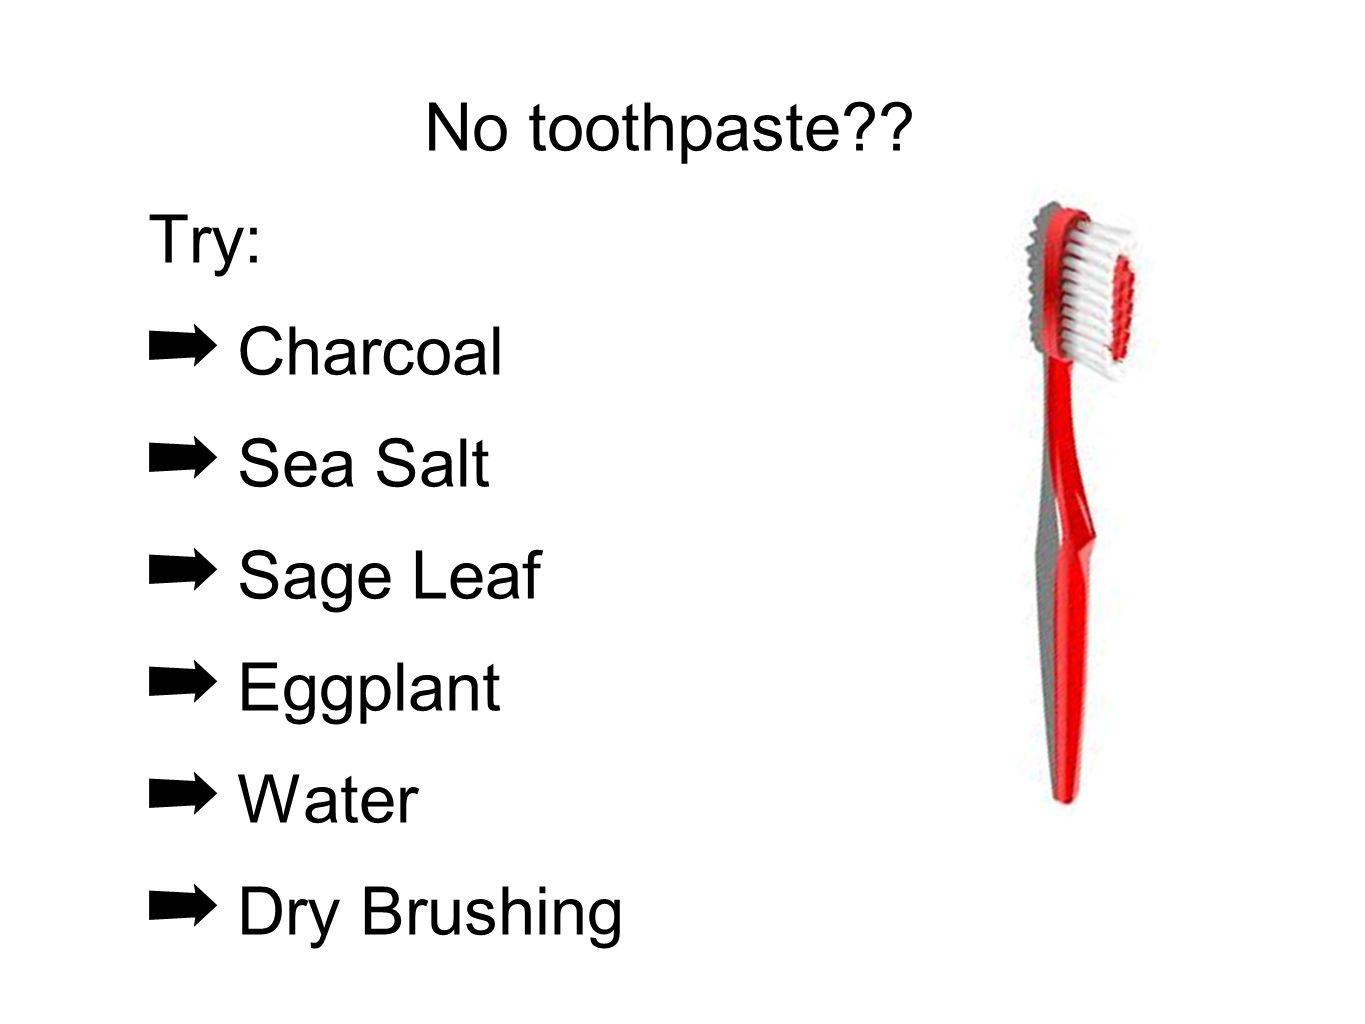 No toothpaste Try: Charcoal Sea Salt Sage Leaf Eggplant Water Dry Brushing